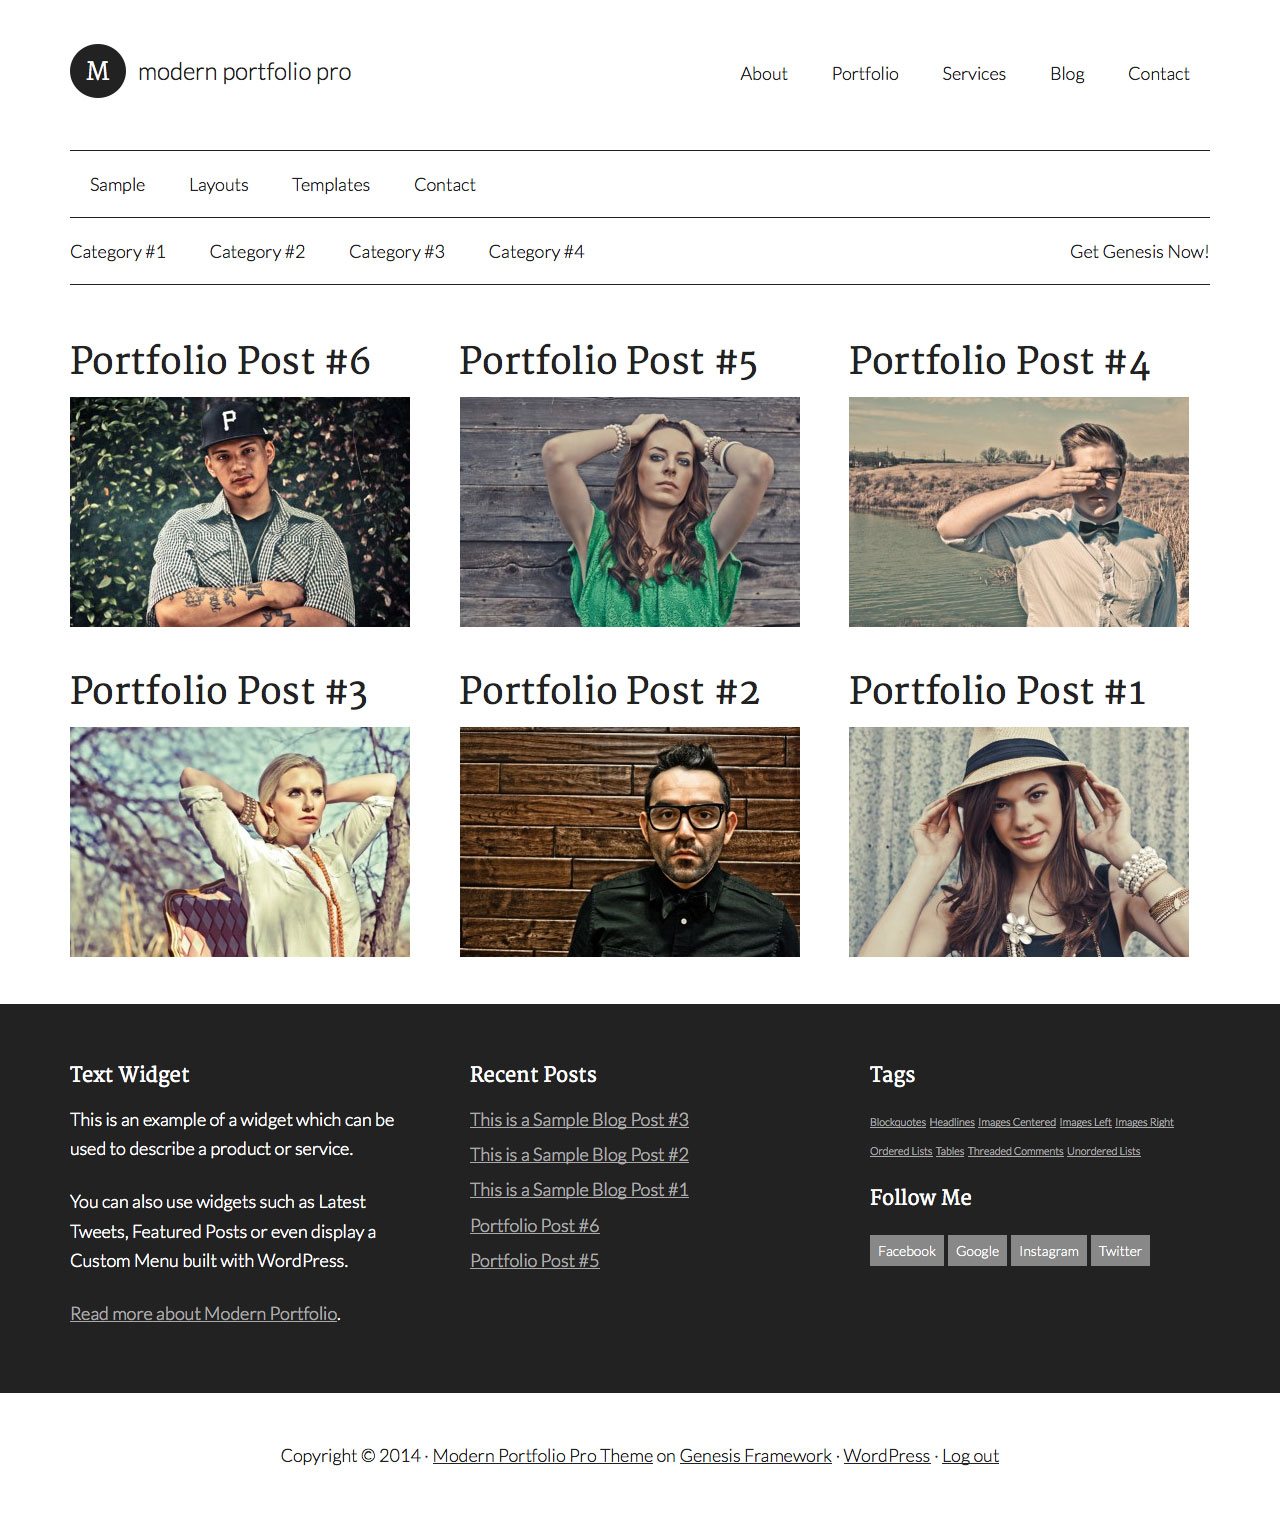 portfolio-category-columns-mpp